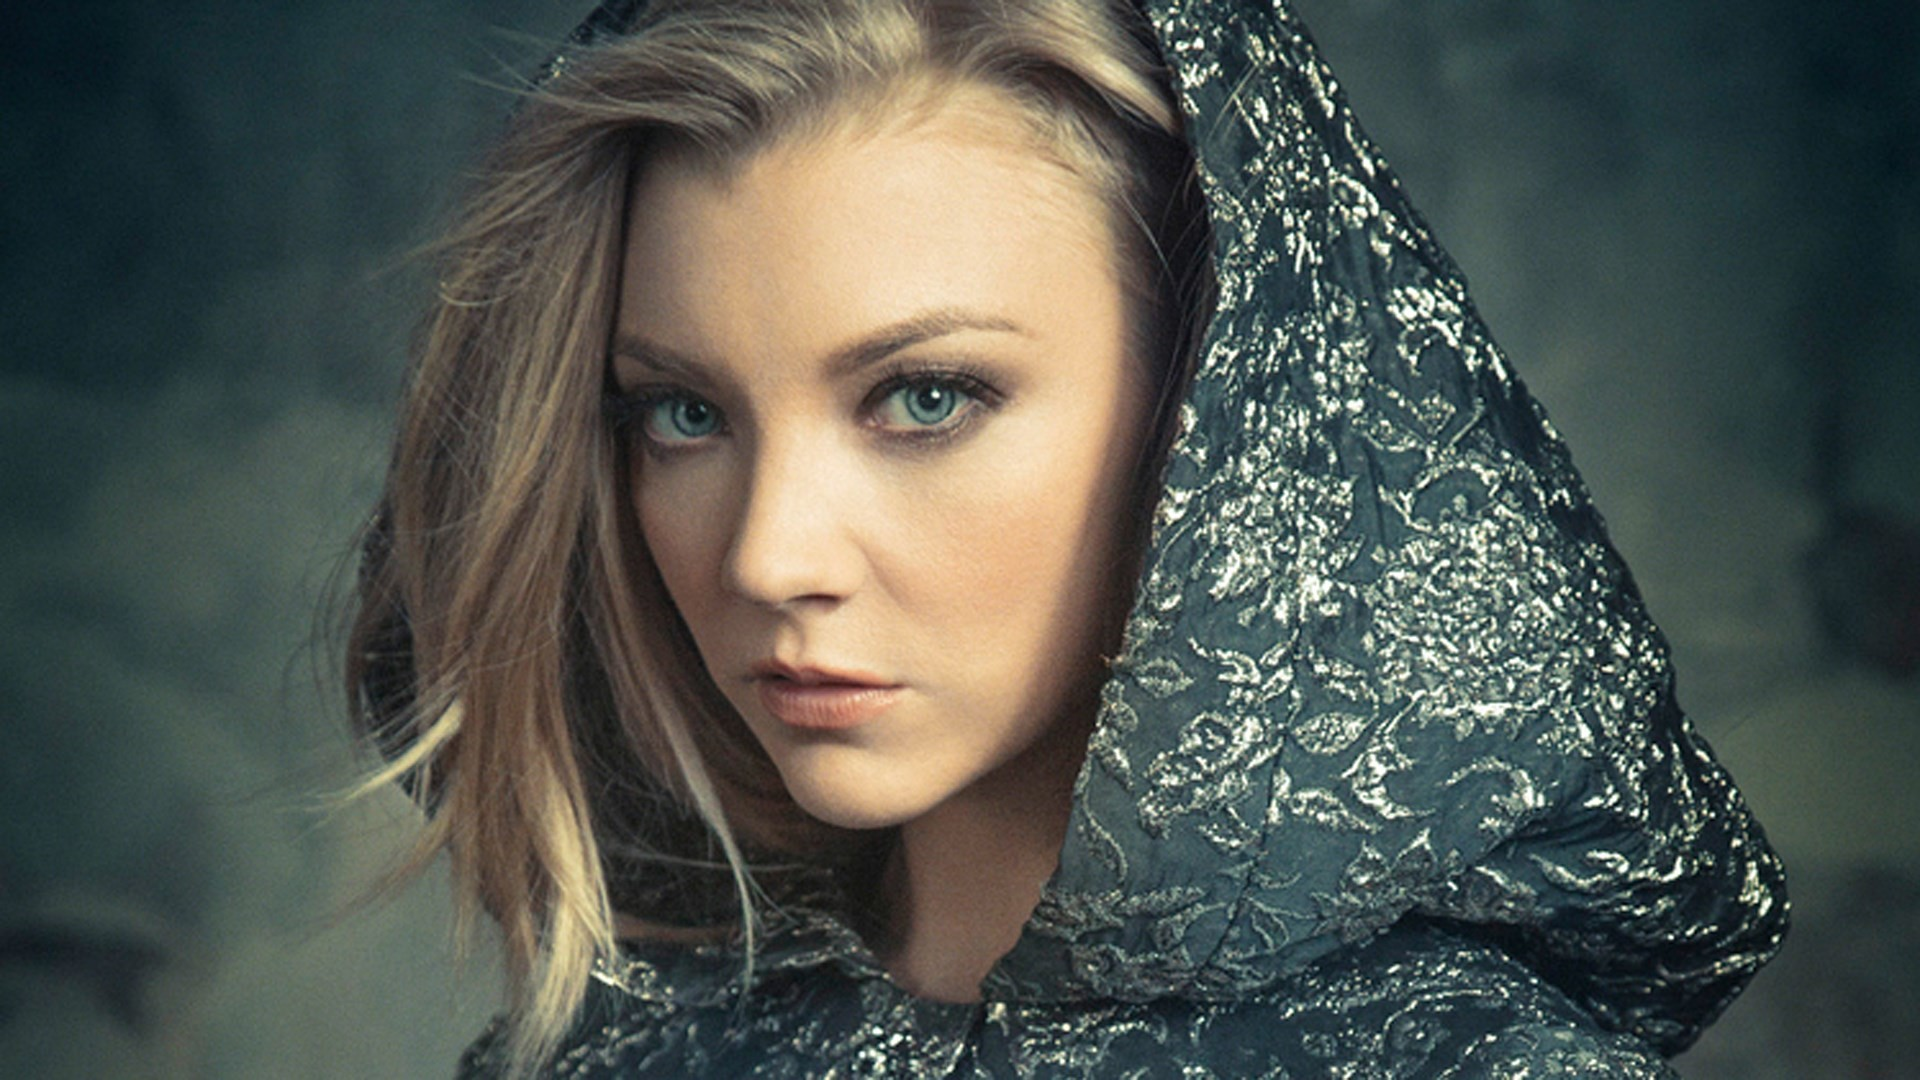 wallpapers for picture hd natalie dormer in high res free